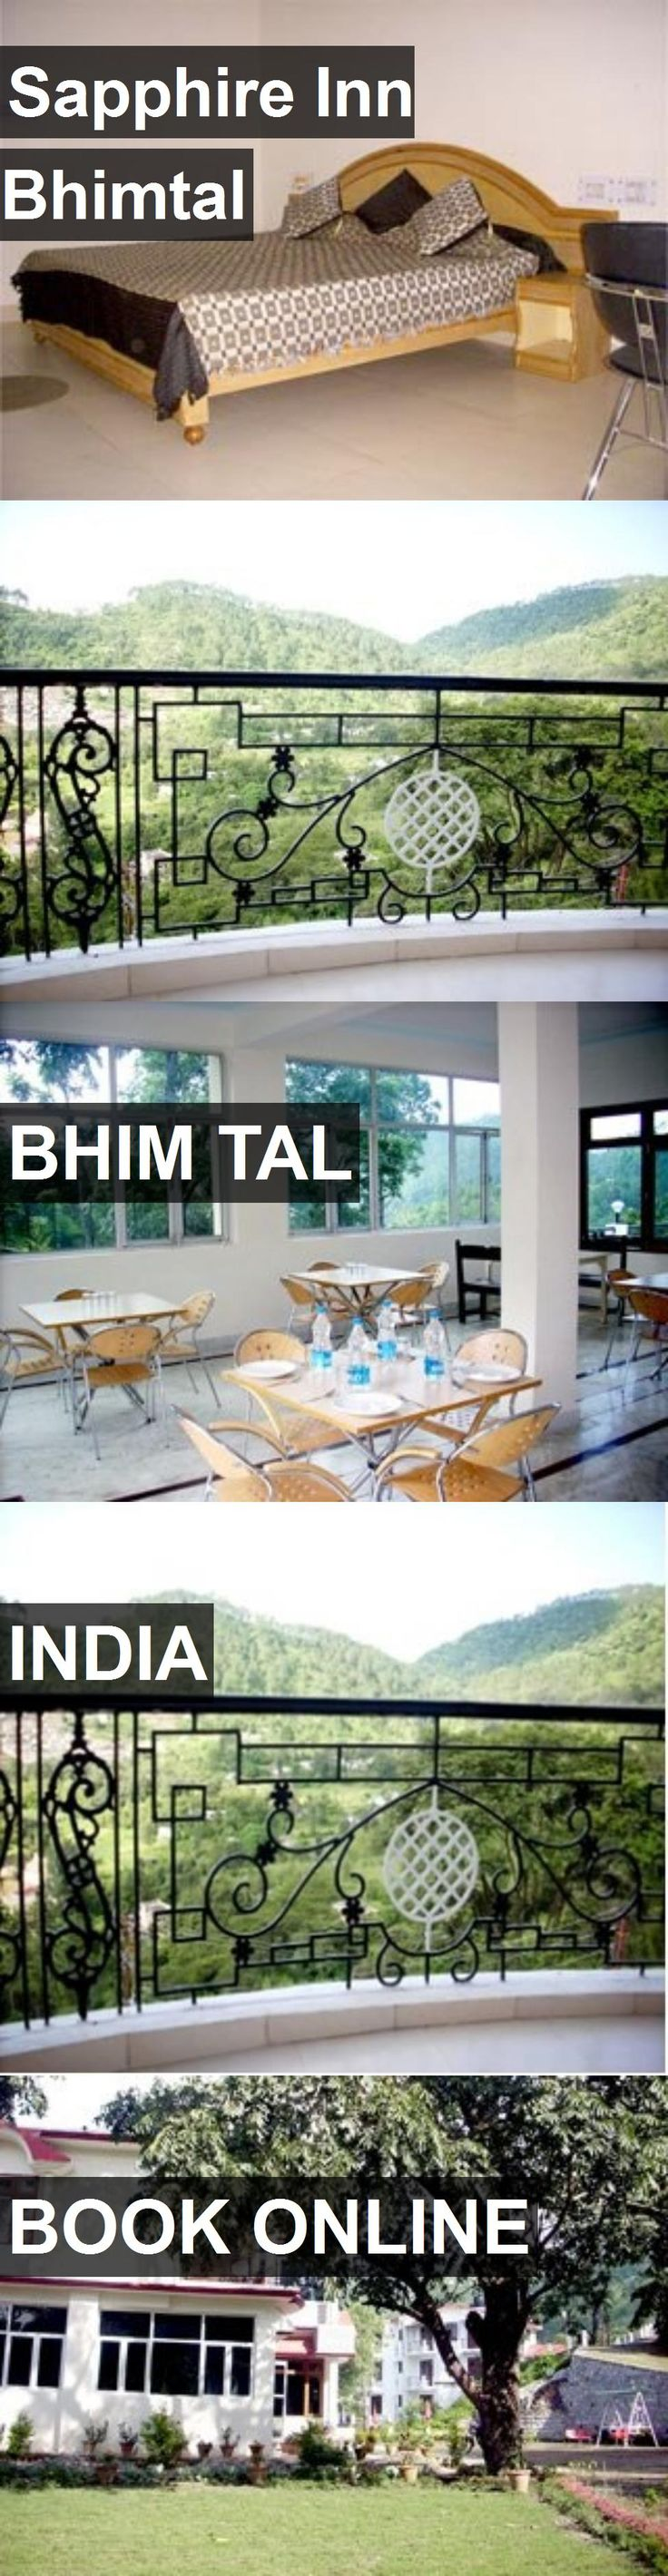 Hotel Sapphire Inn Bhimtal in Bhim Tal, India. For more information, photos, reviews and best prices please follow the link. #India #BhimTal #travel #vacation #hotel